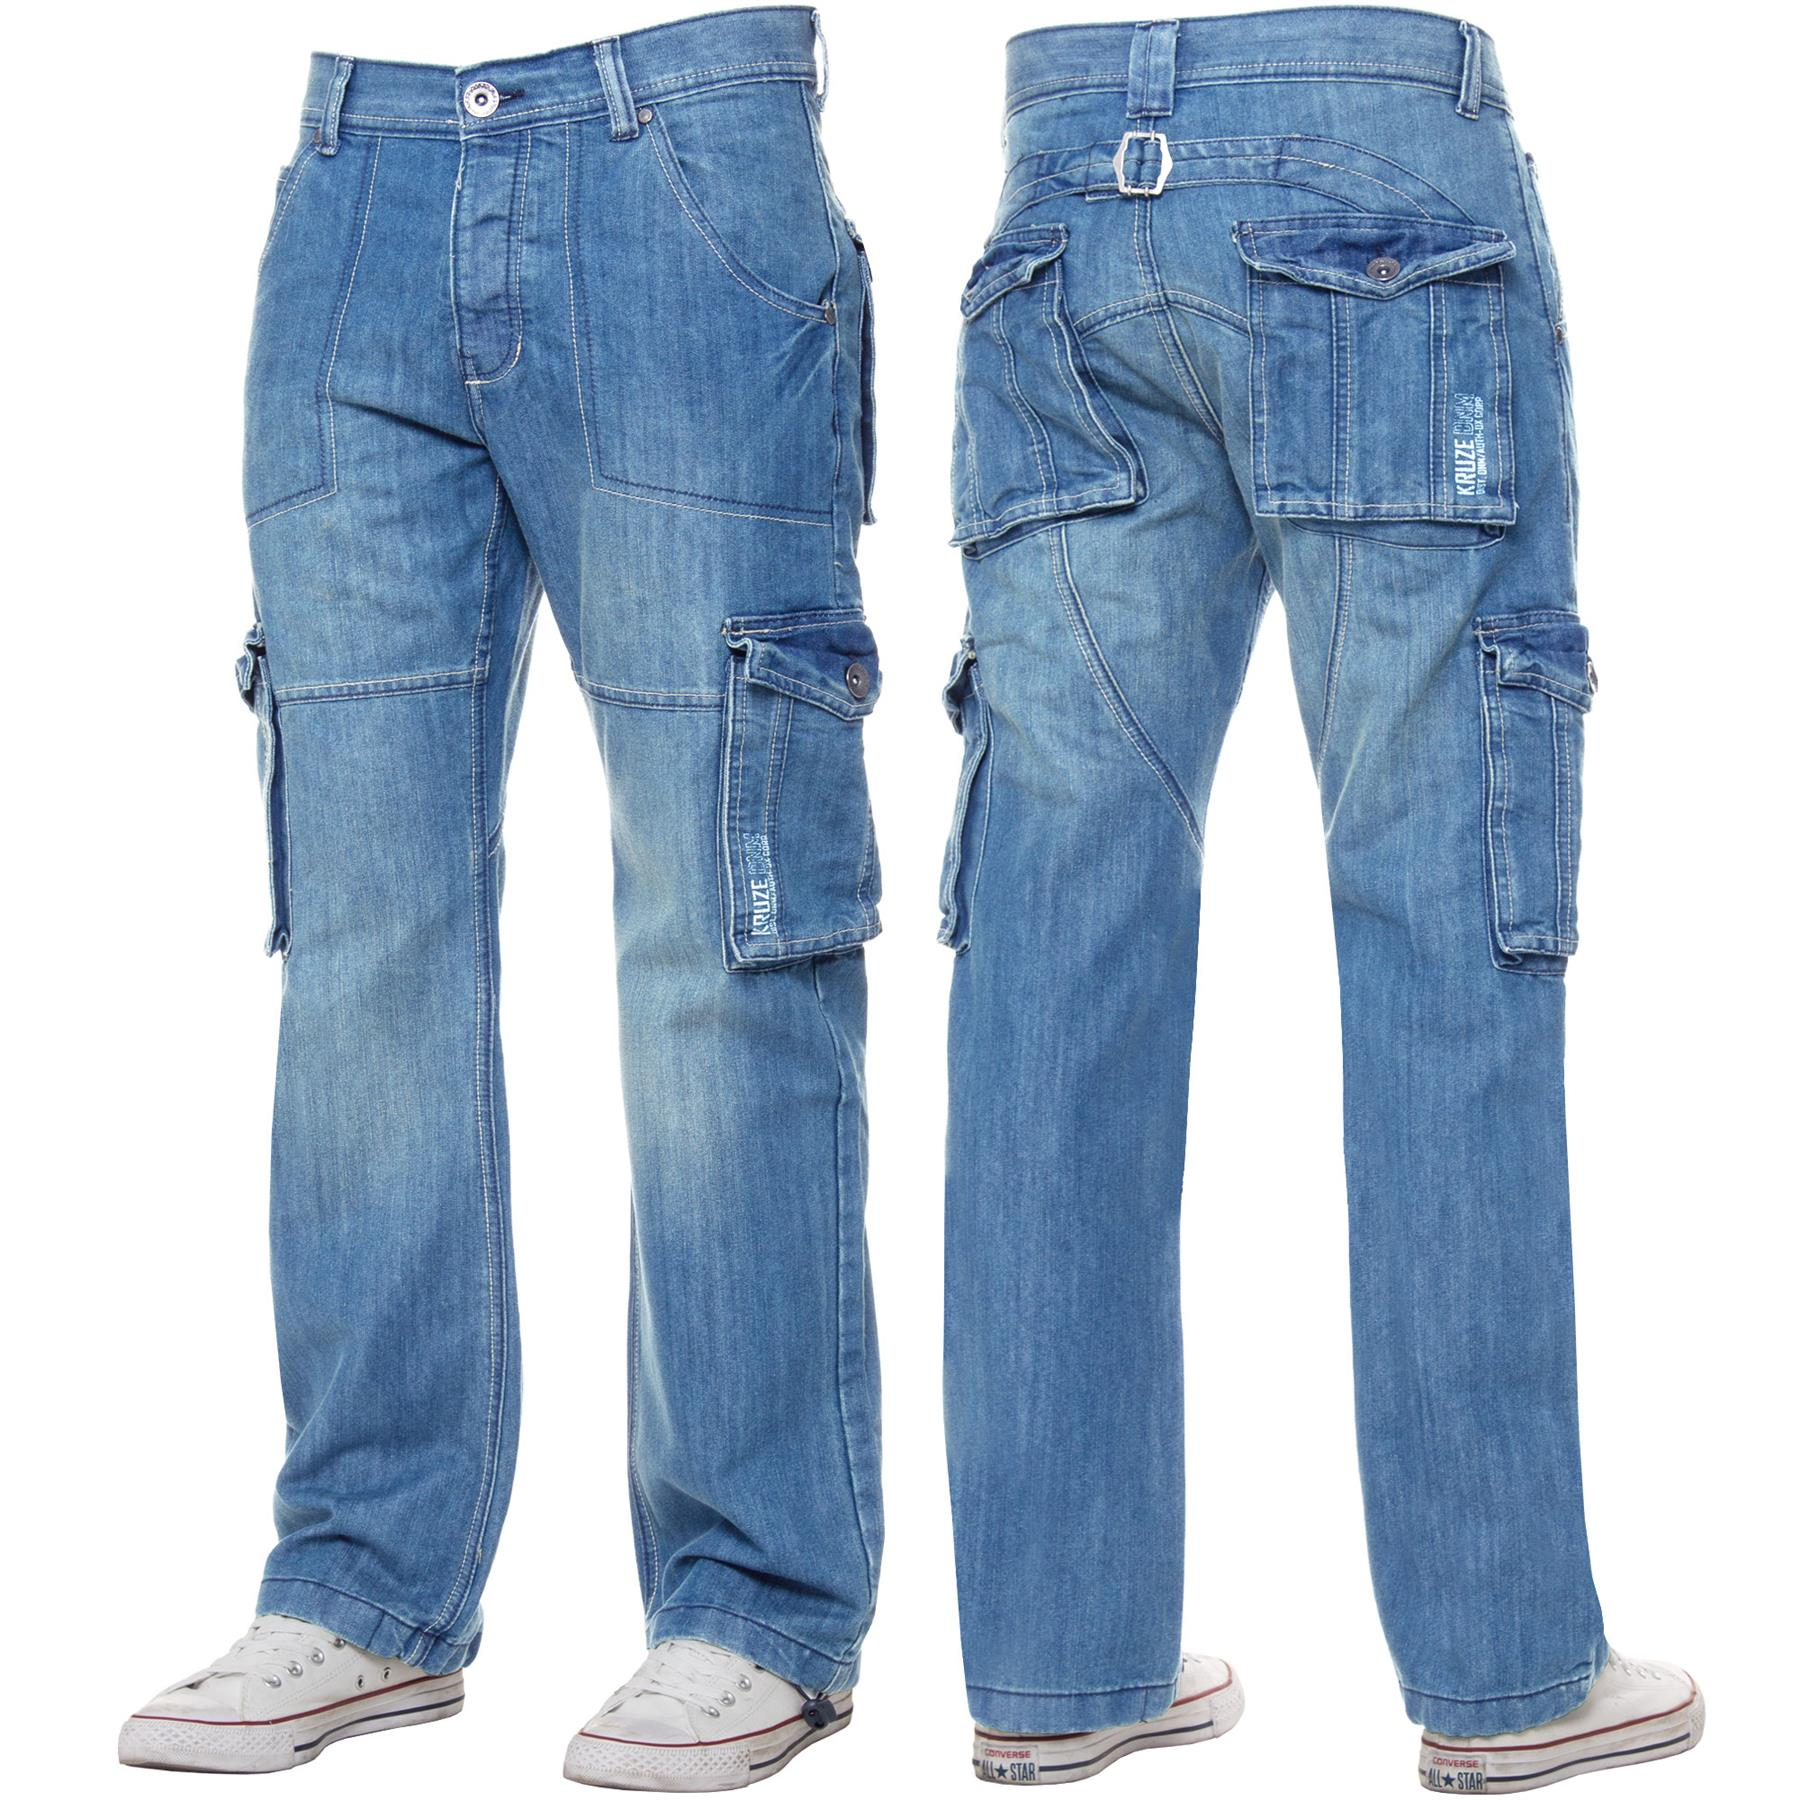 Kruze-Mens-Cargo-Combat-Jeans-Casual-Work-Denim-Pants-Big-Tall-All-Waist-Sizes thumbnail 39